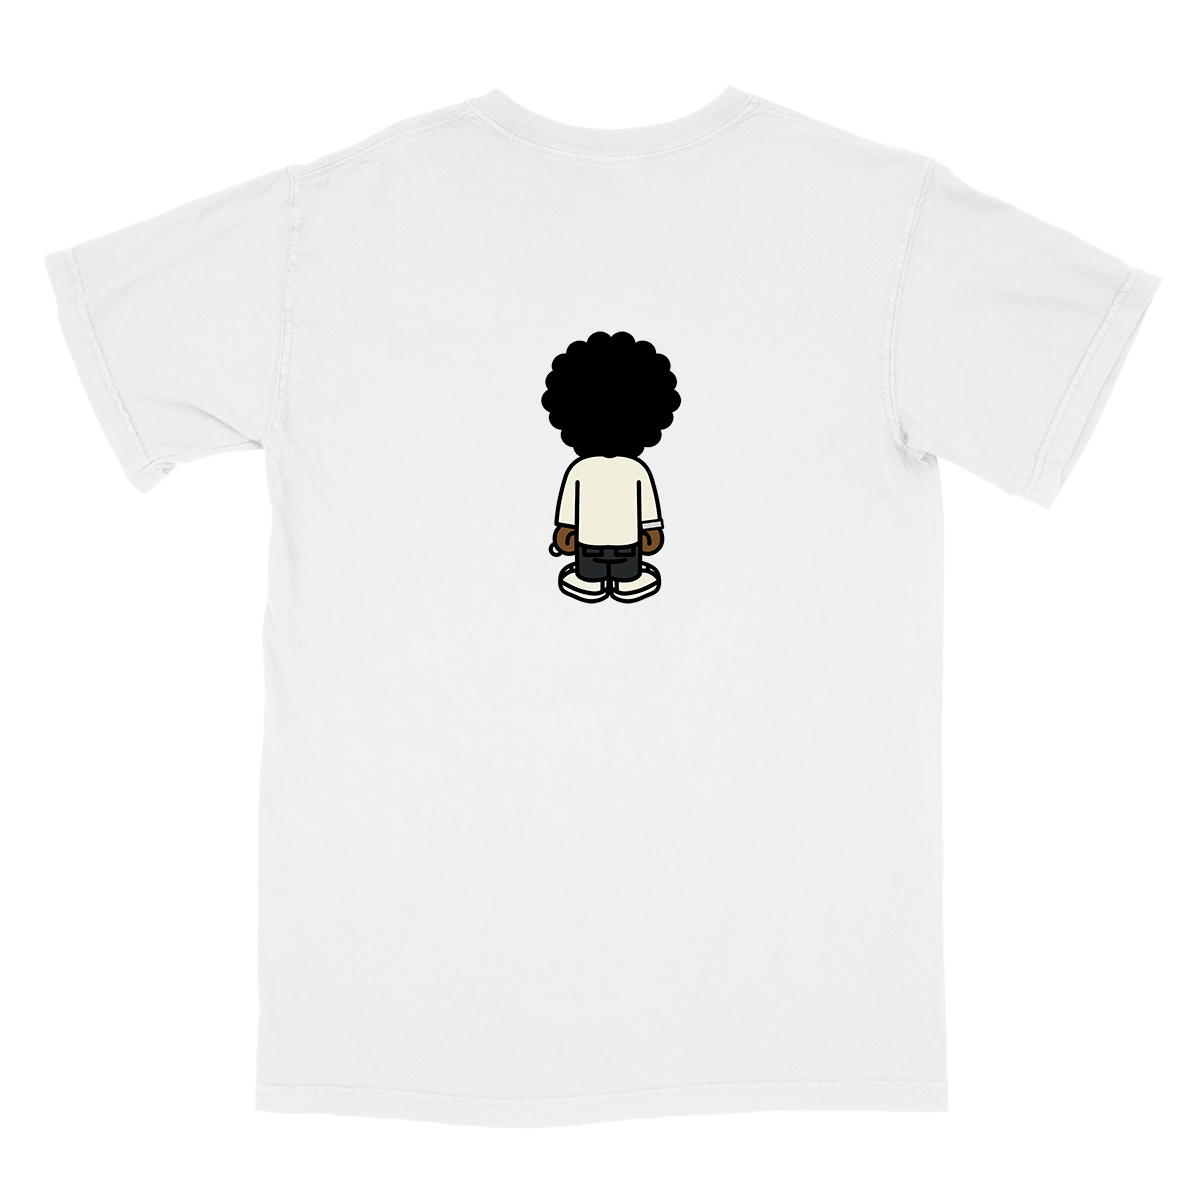 Wasting Time Tee - White